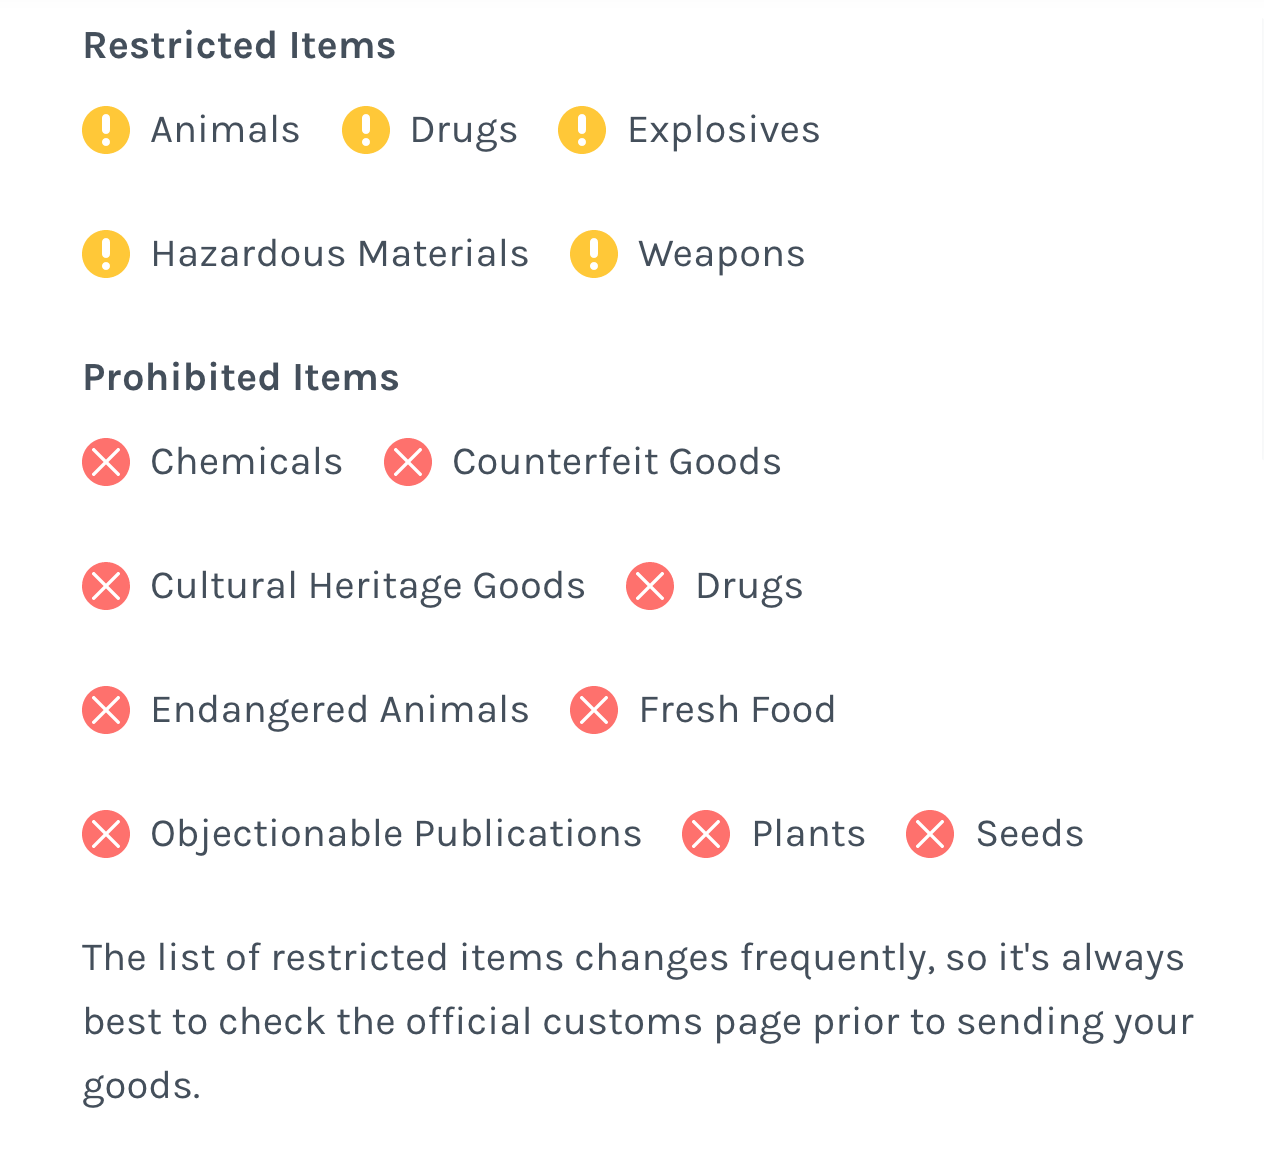 List of restricted and prohibited items in the US